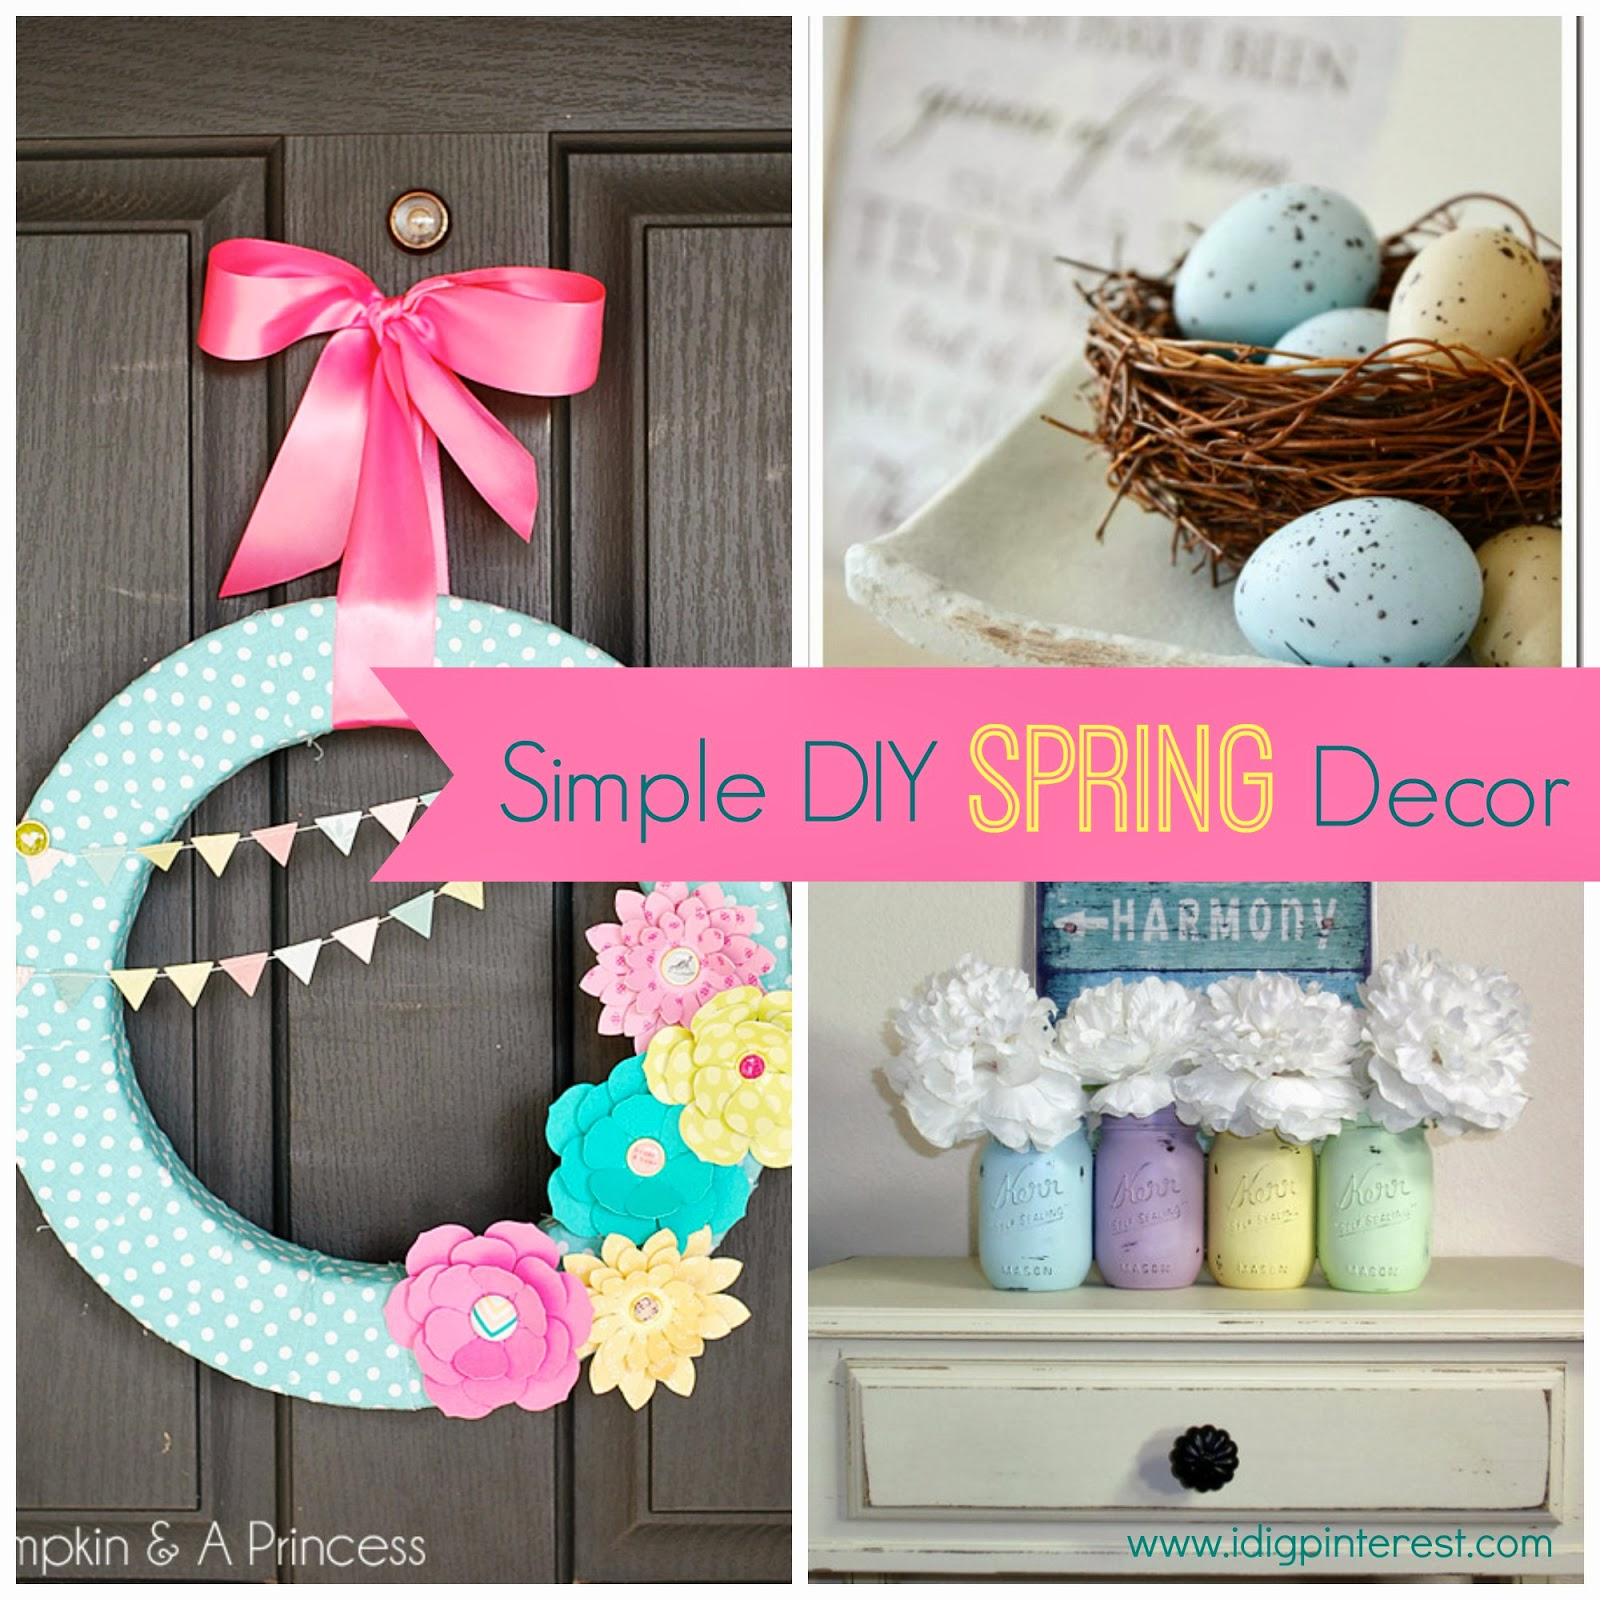 Home Design Ideas Build: Simple DIY Spring Decor Ideas